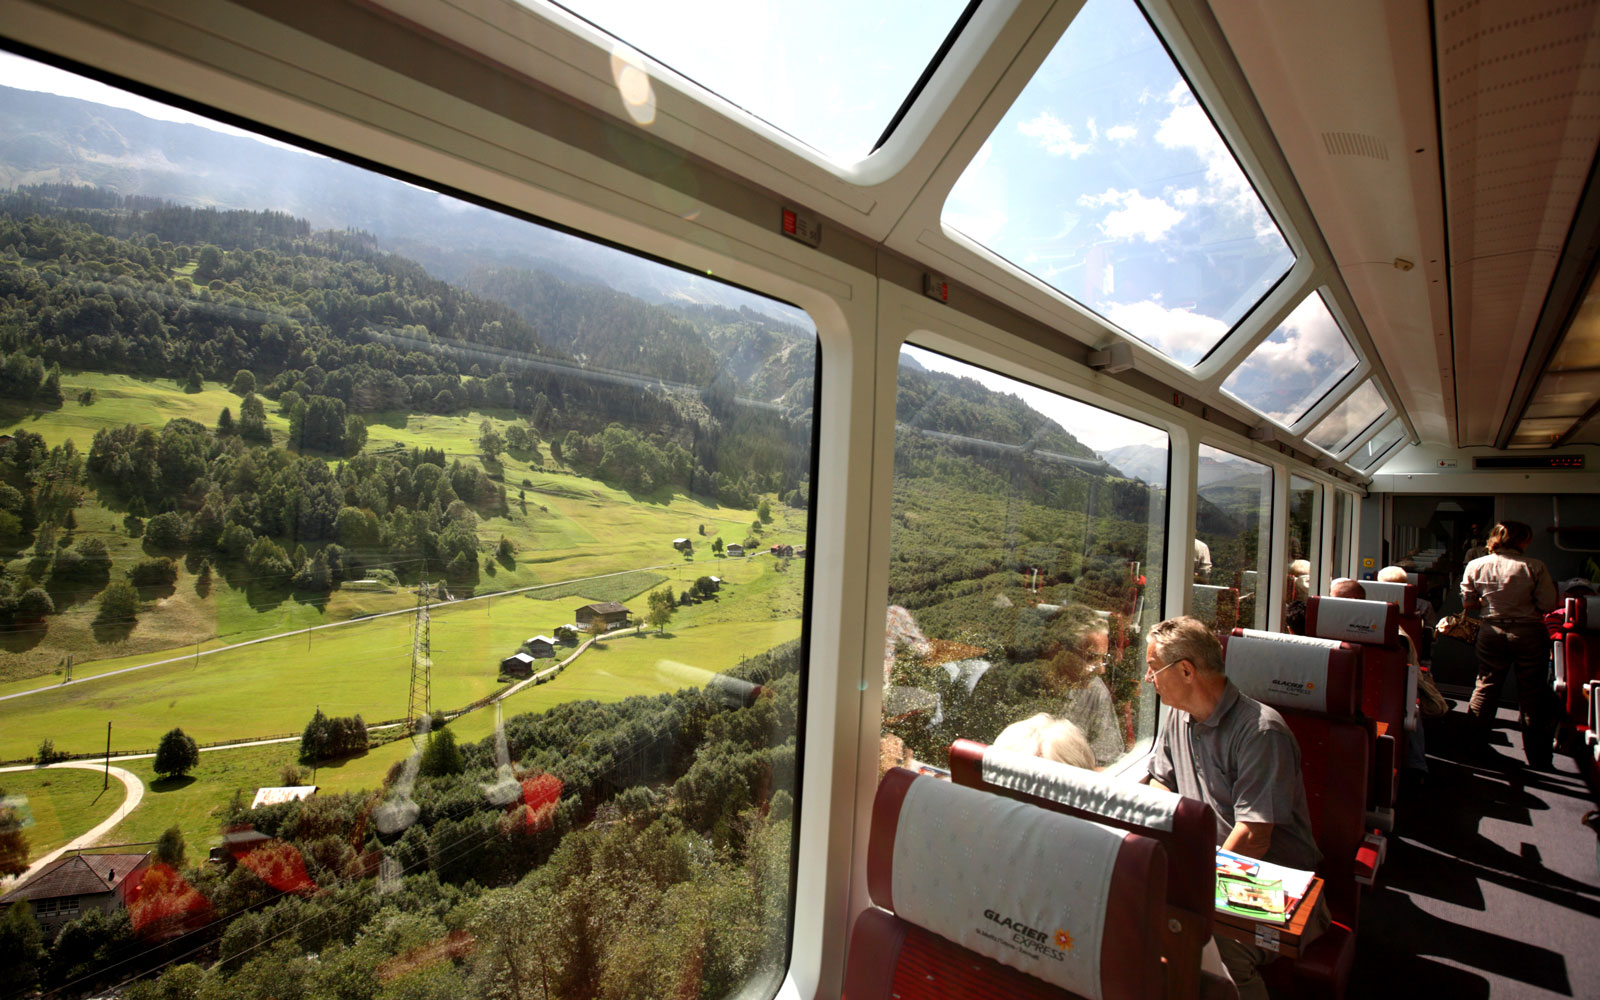 The Glacier Express train comes with comes with large panoramic windows that reach its rood to let passengers admire the views.